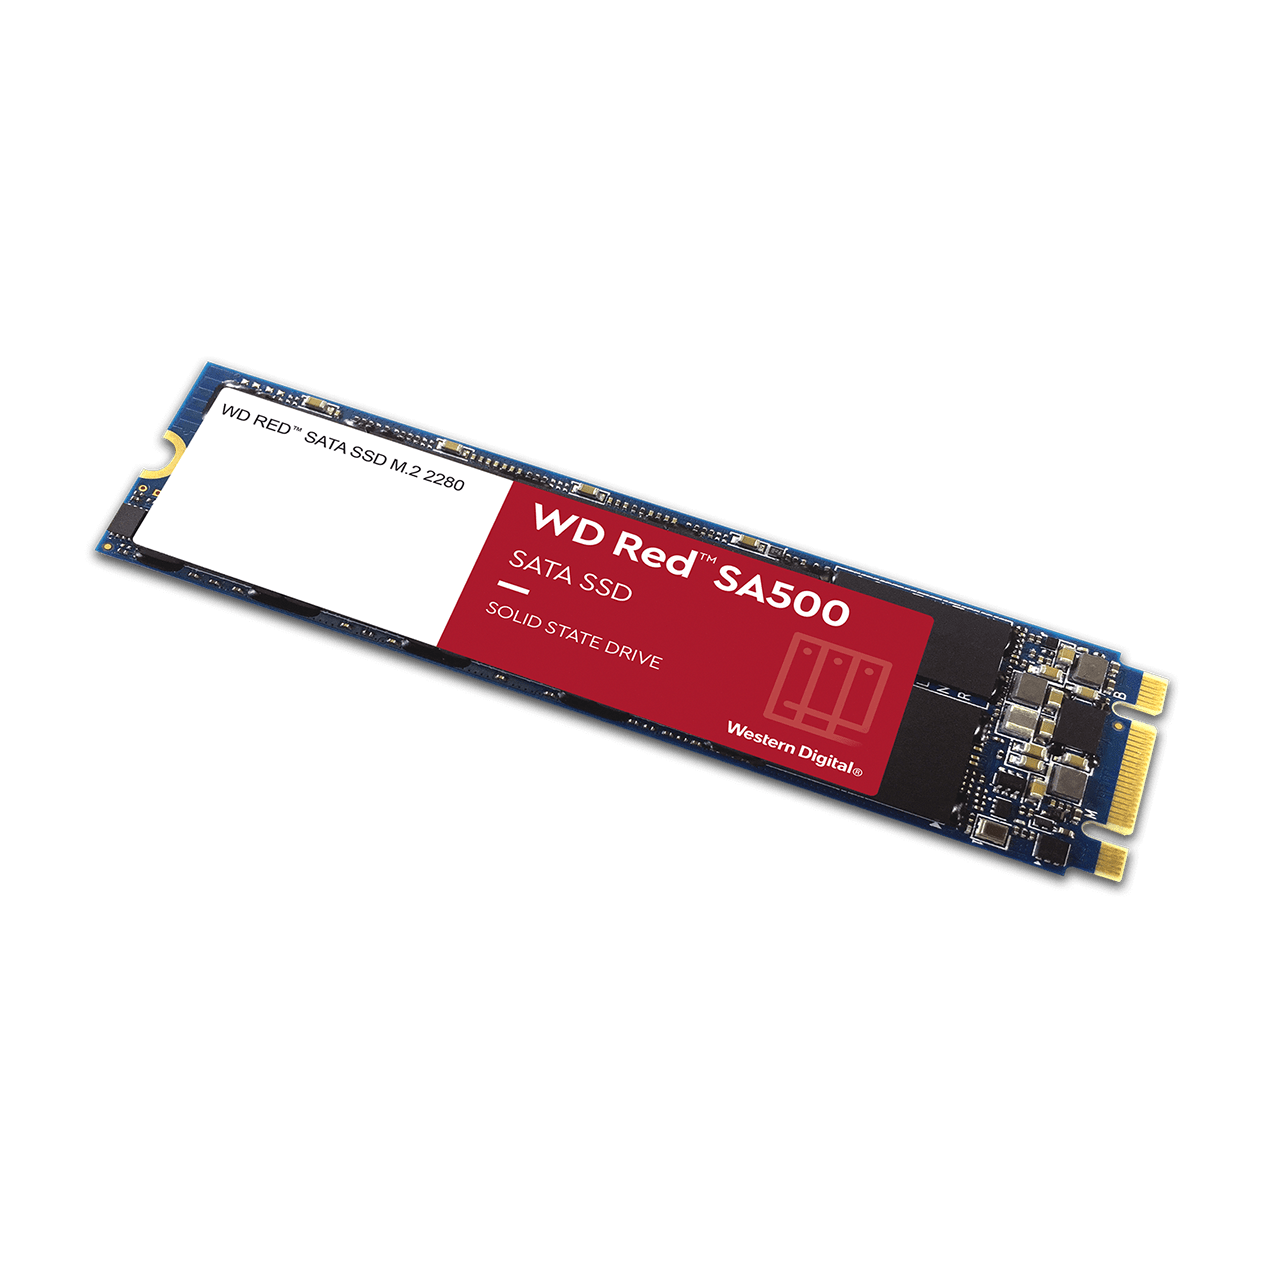 WD Red Sata 2.5 SSD M2 No Cap